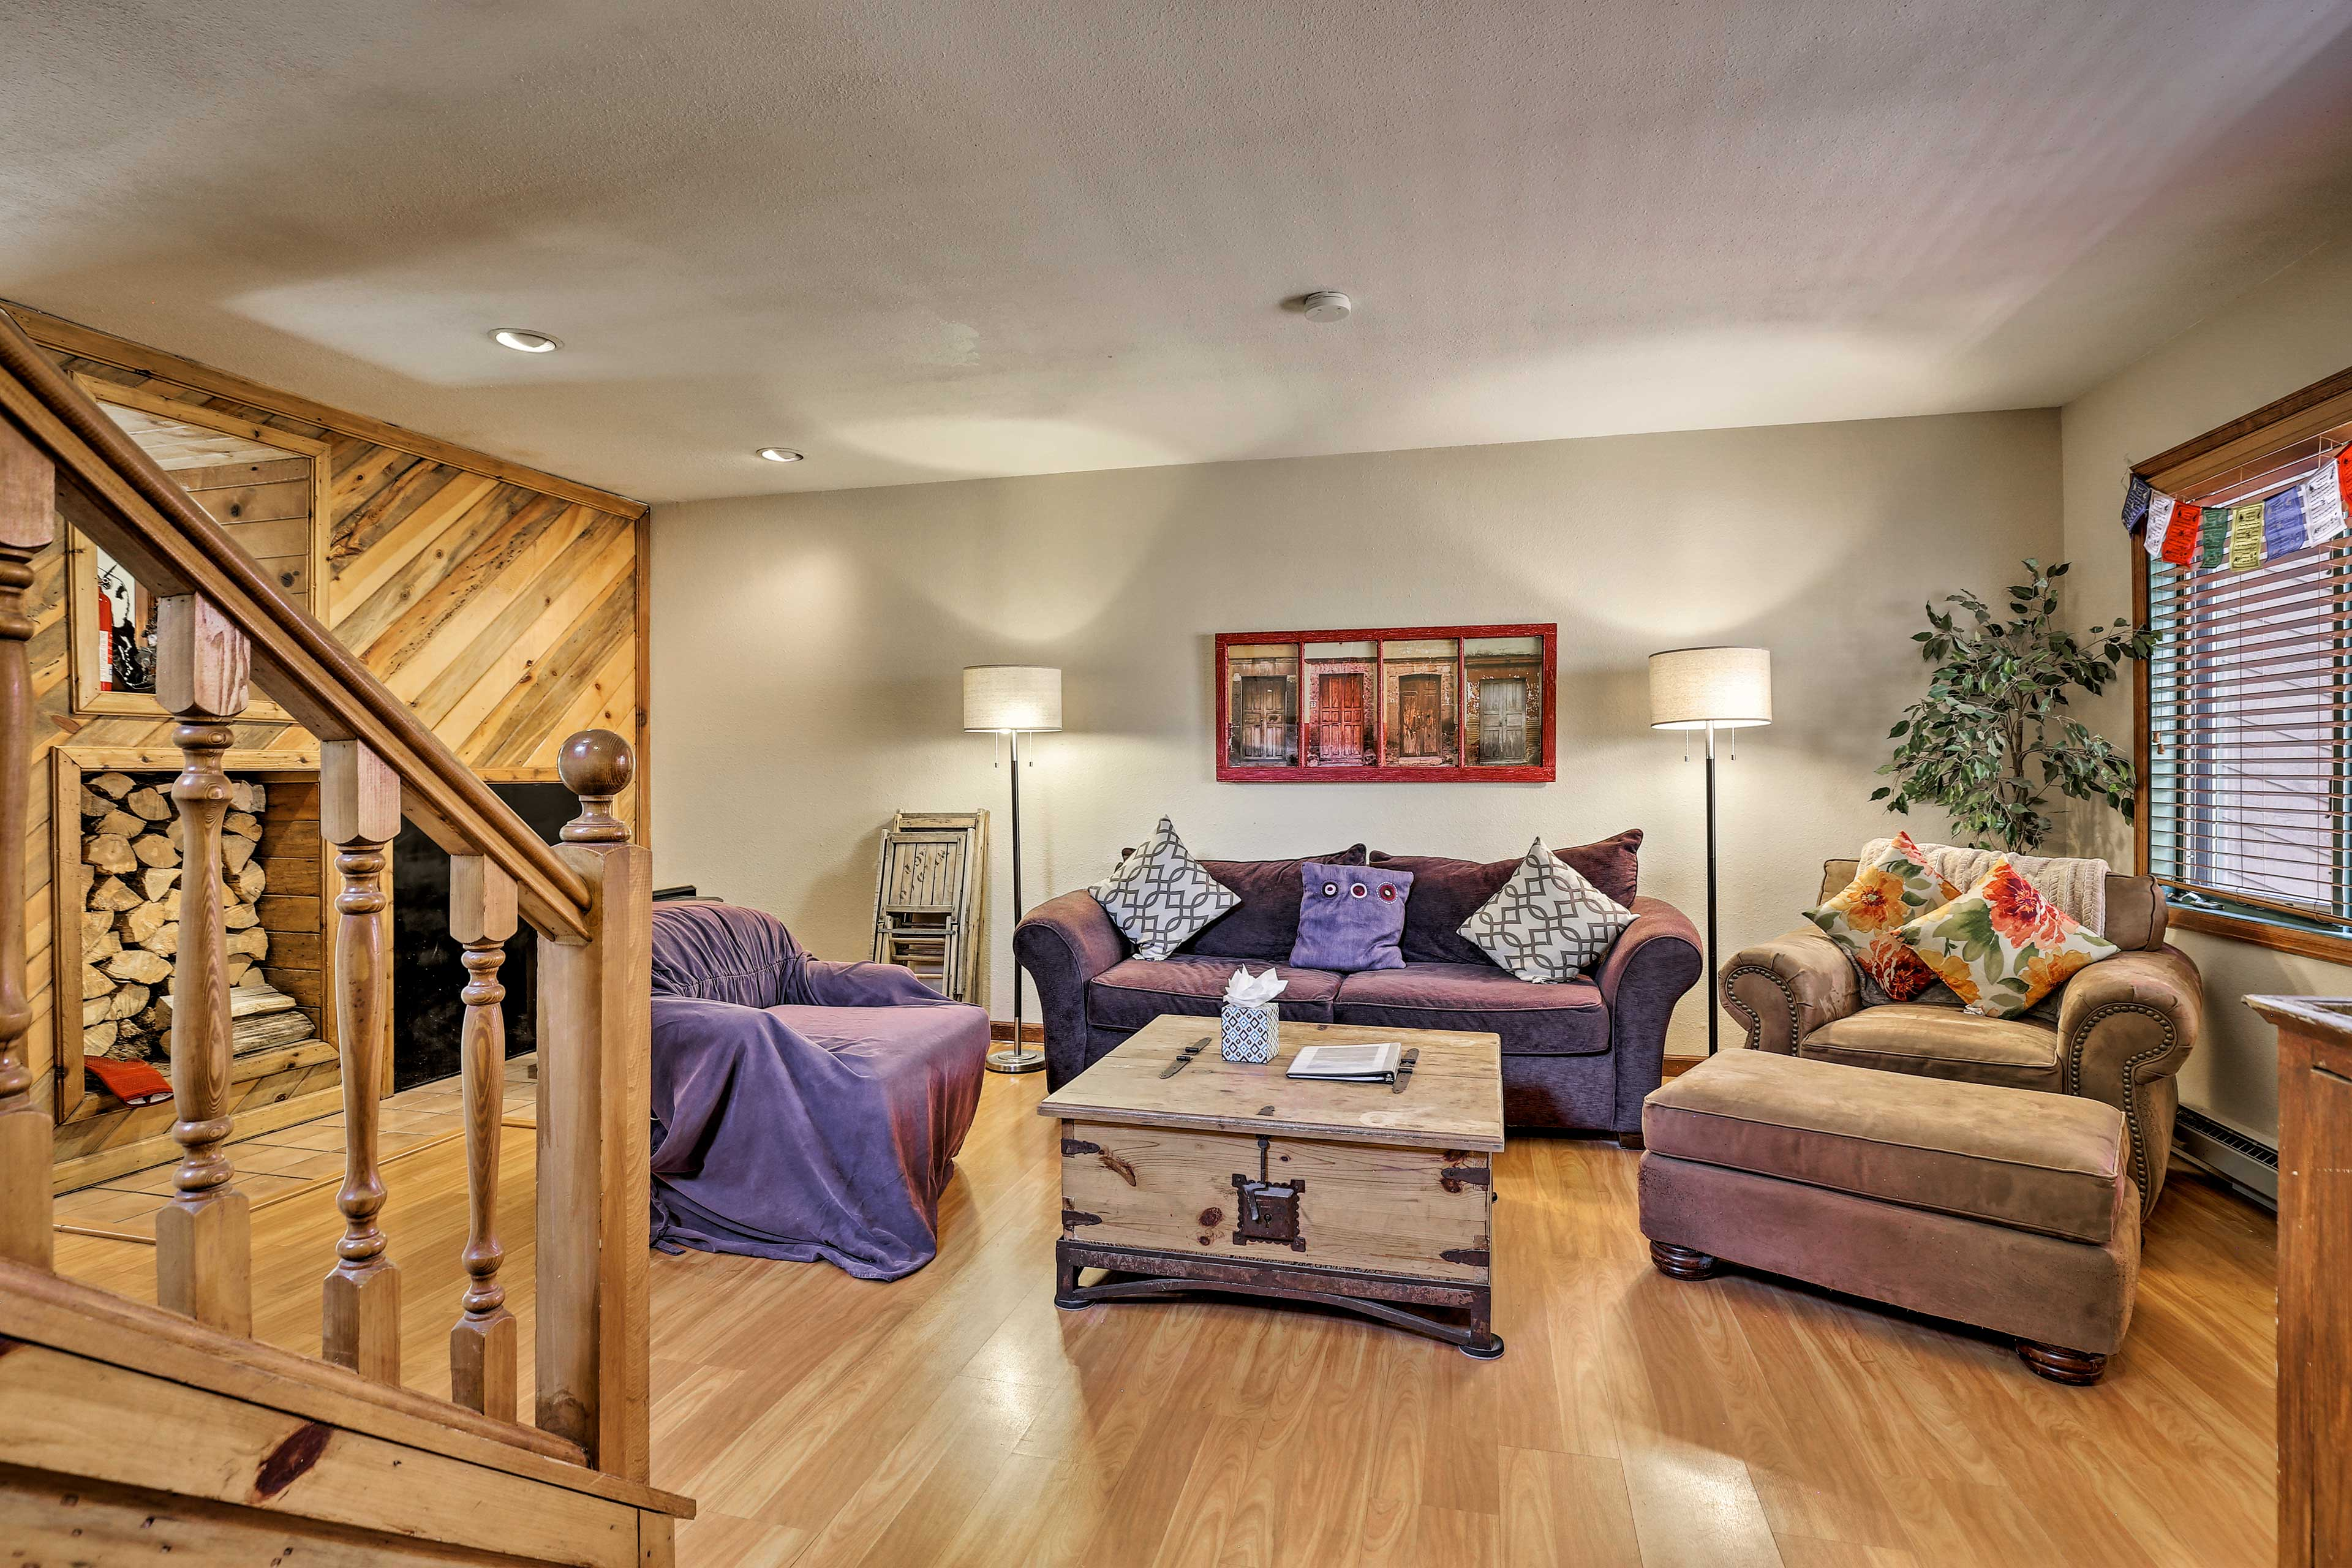 This charming abode features just shy of 1,500 square feet of living space!